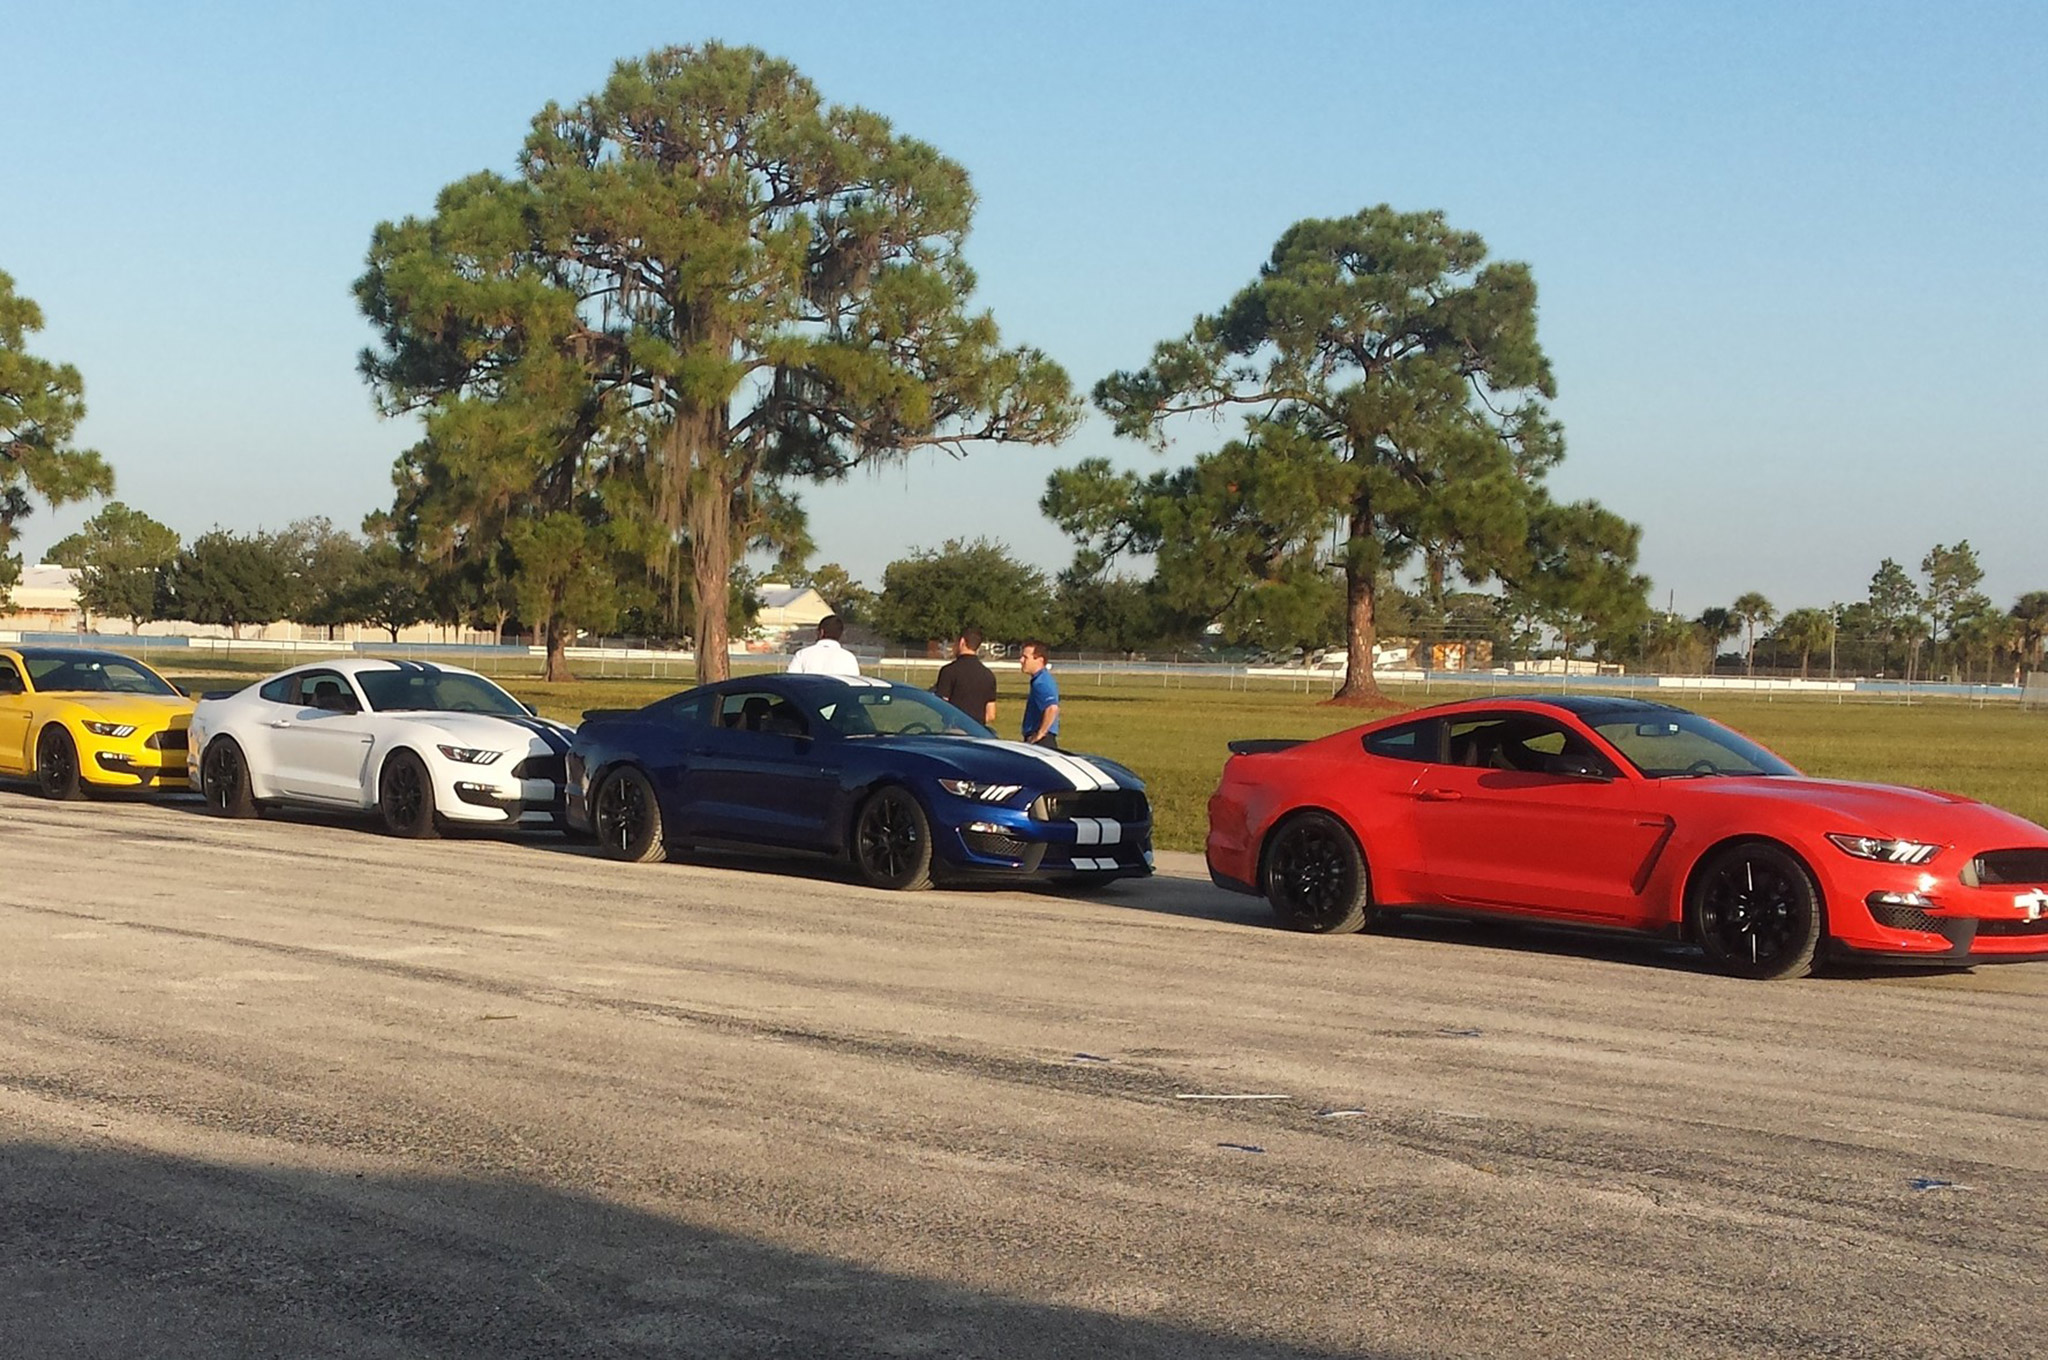 Ford supplies a selection of Shelby GT350 models (both base and R-model in various packages and colors) for the event along with helmet, HANS-type device, and more. All you need to do is wear long pants and closed-toed shoes.